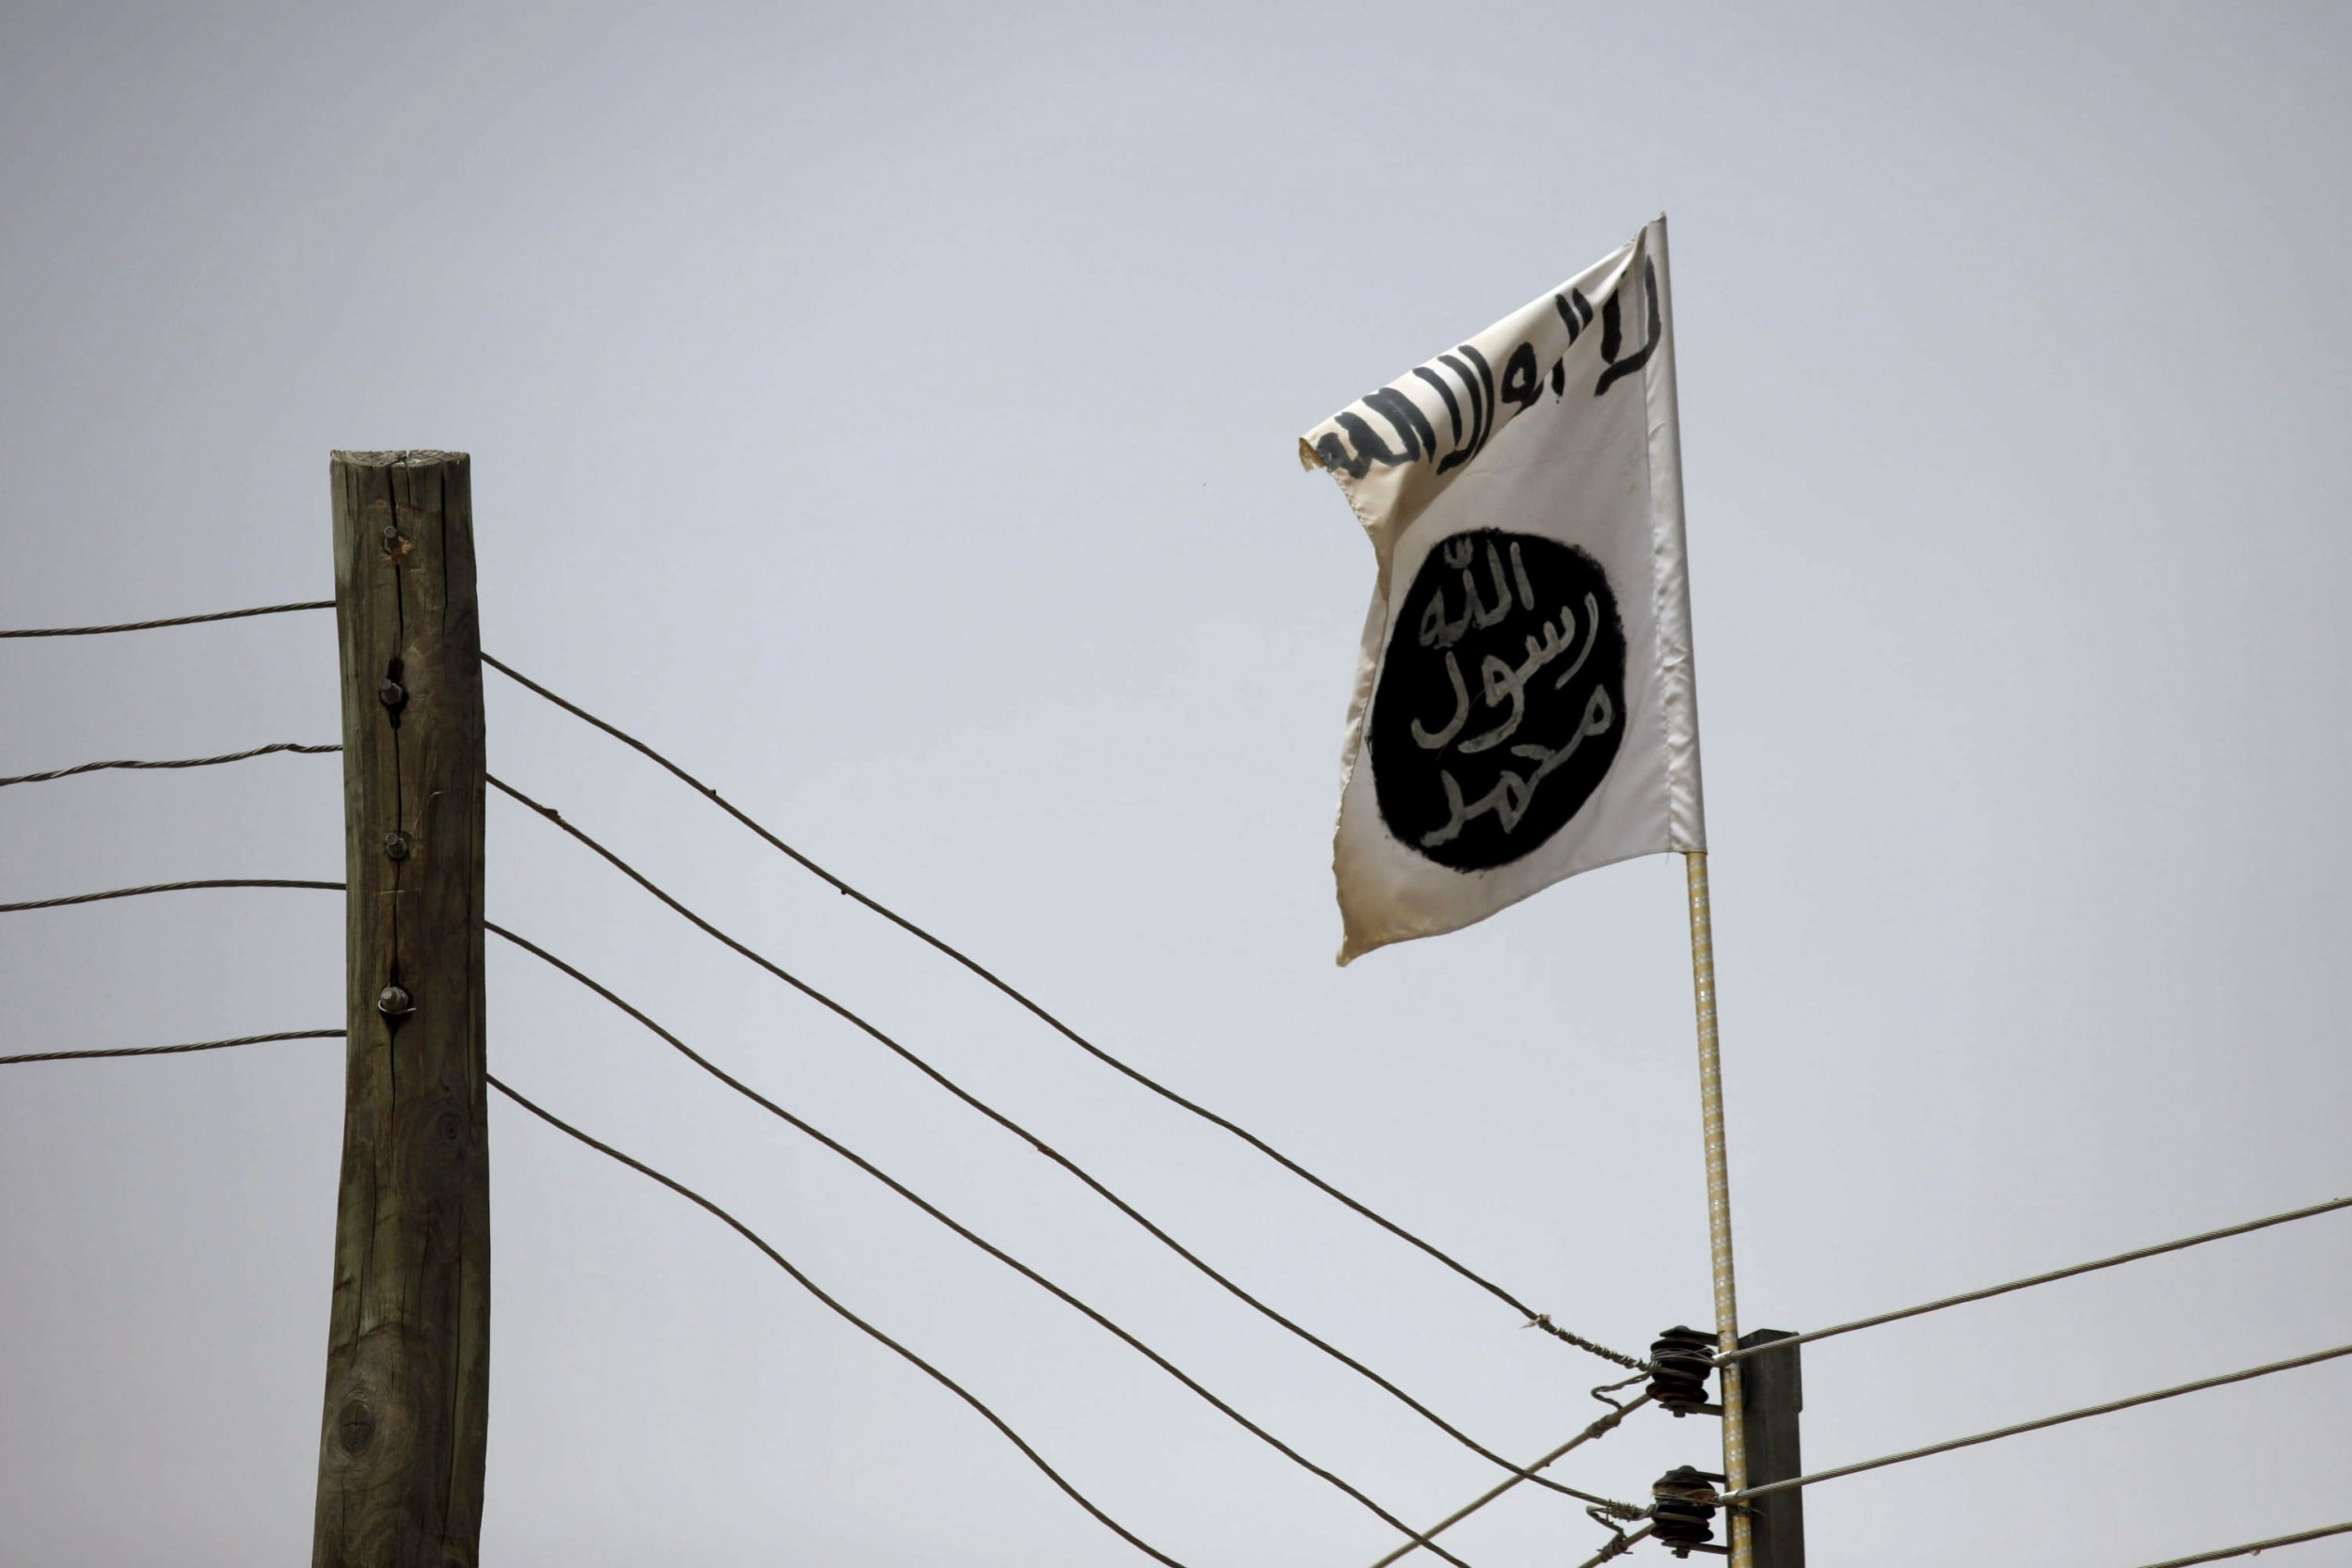 A Boko Haram flag flies in Damasak, Nigeria.